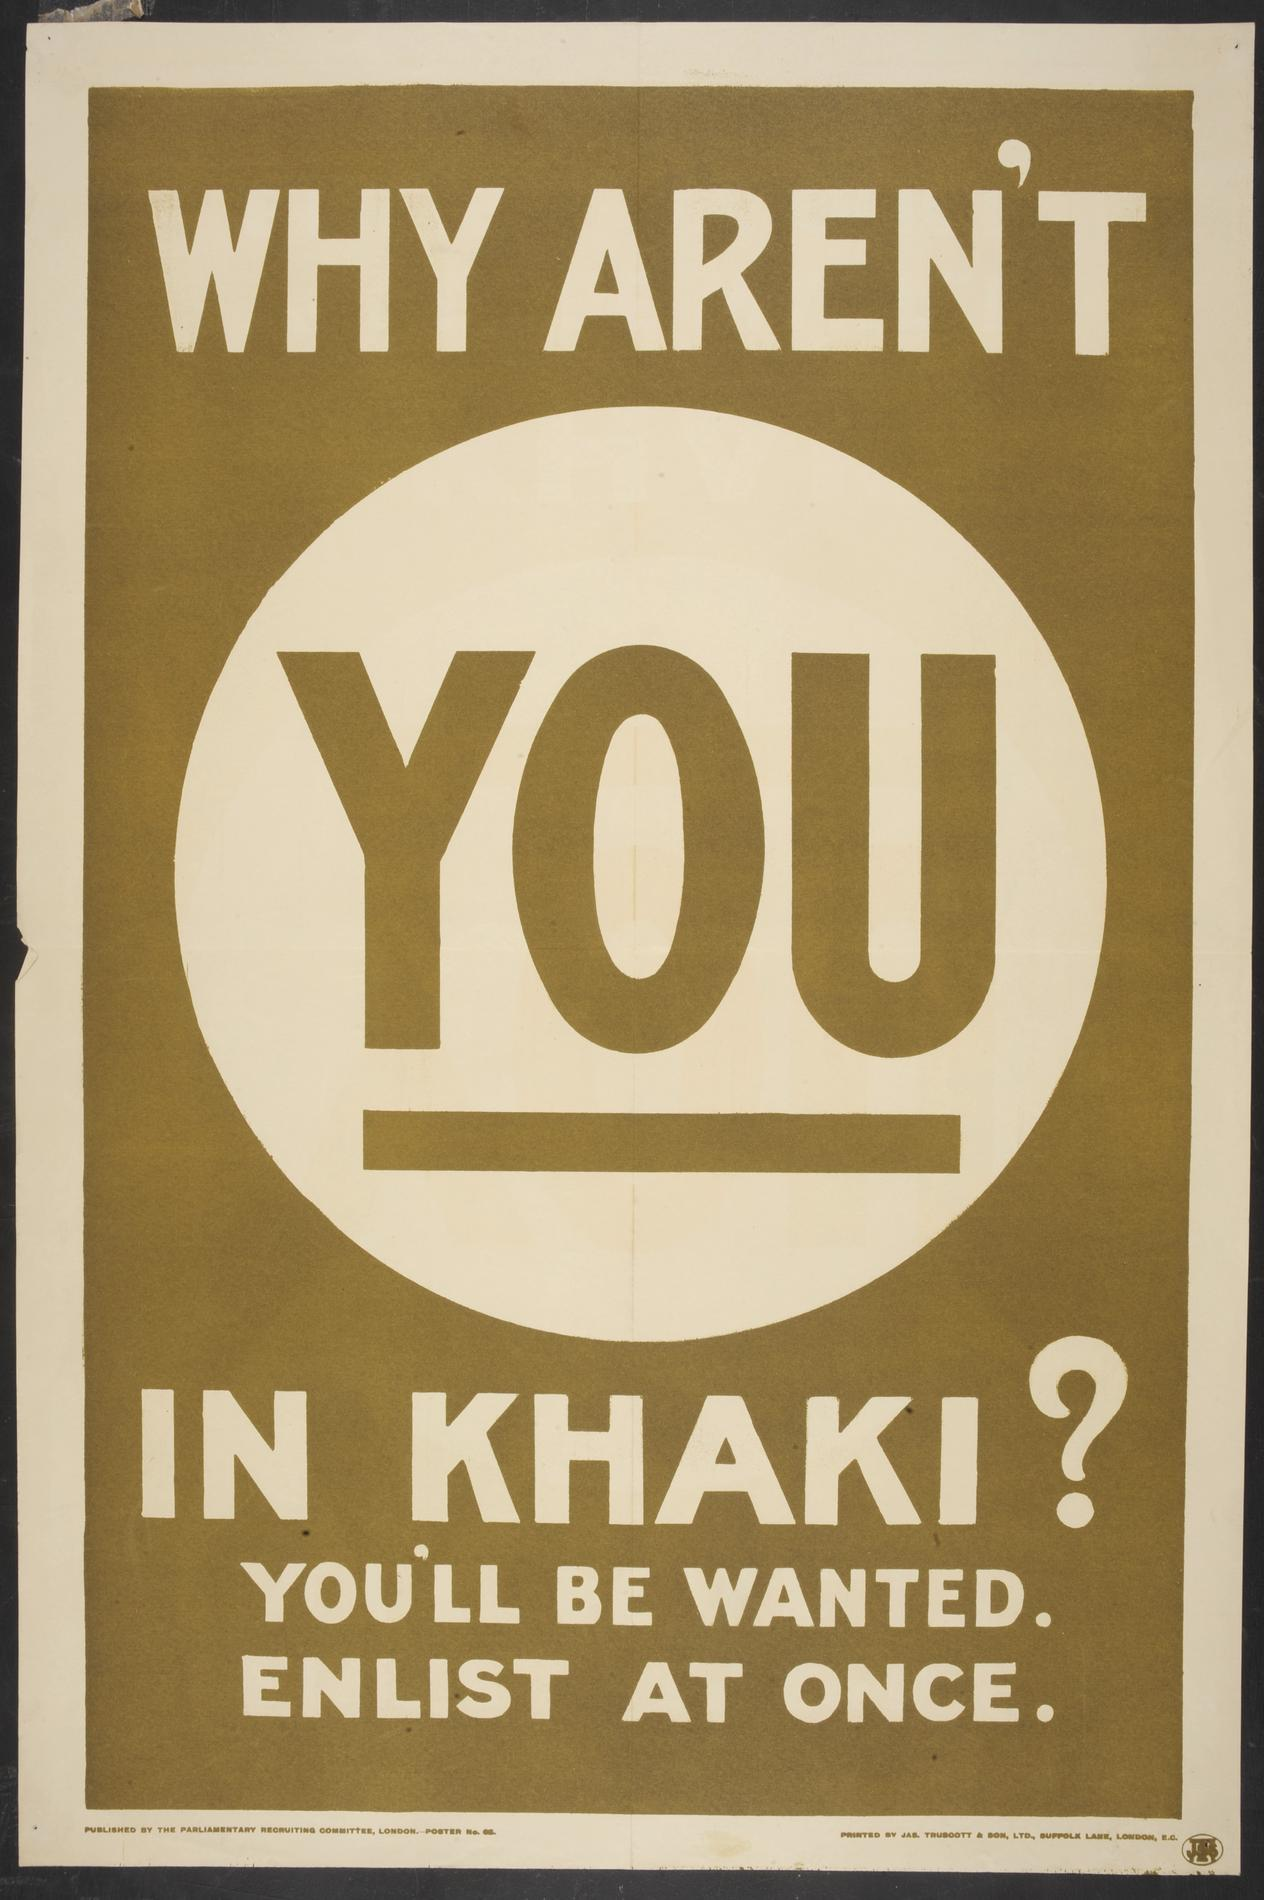 Why aren't you in khaki? (Poster)